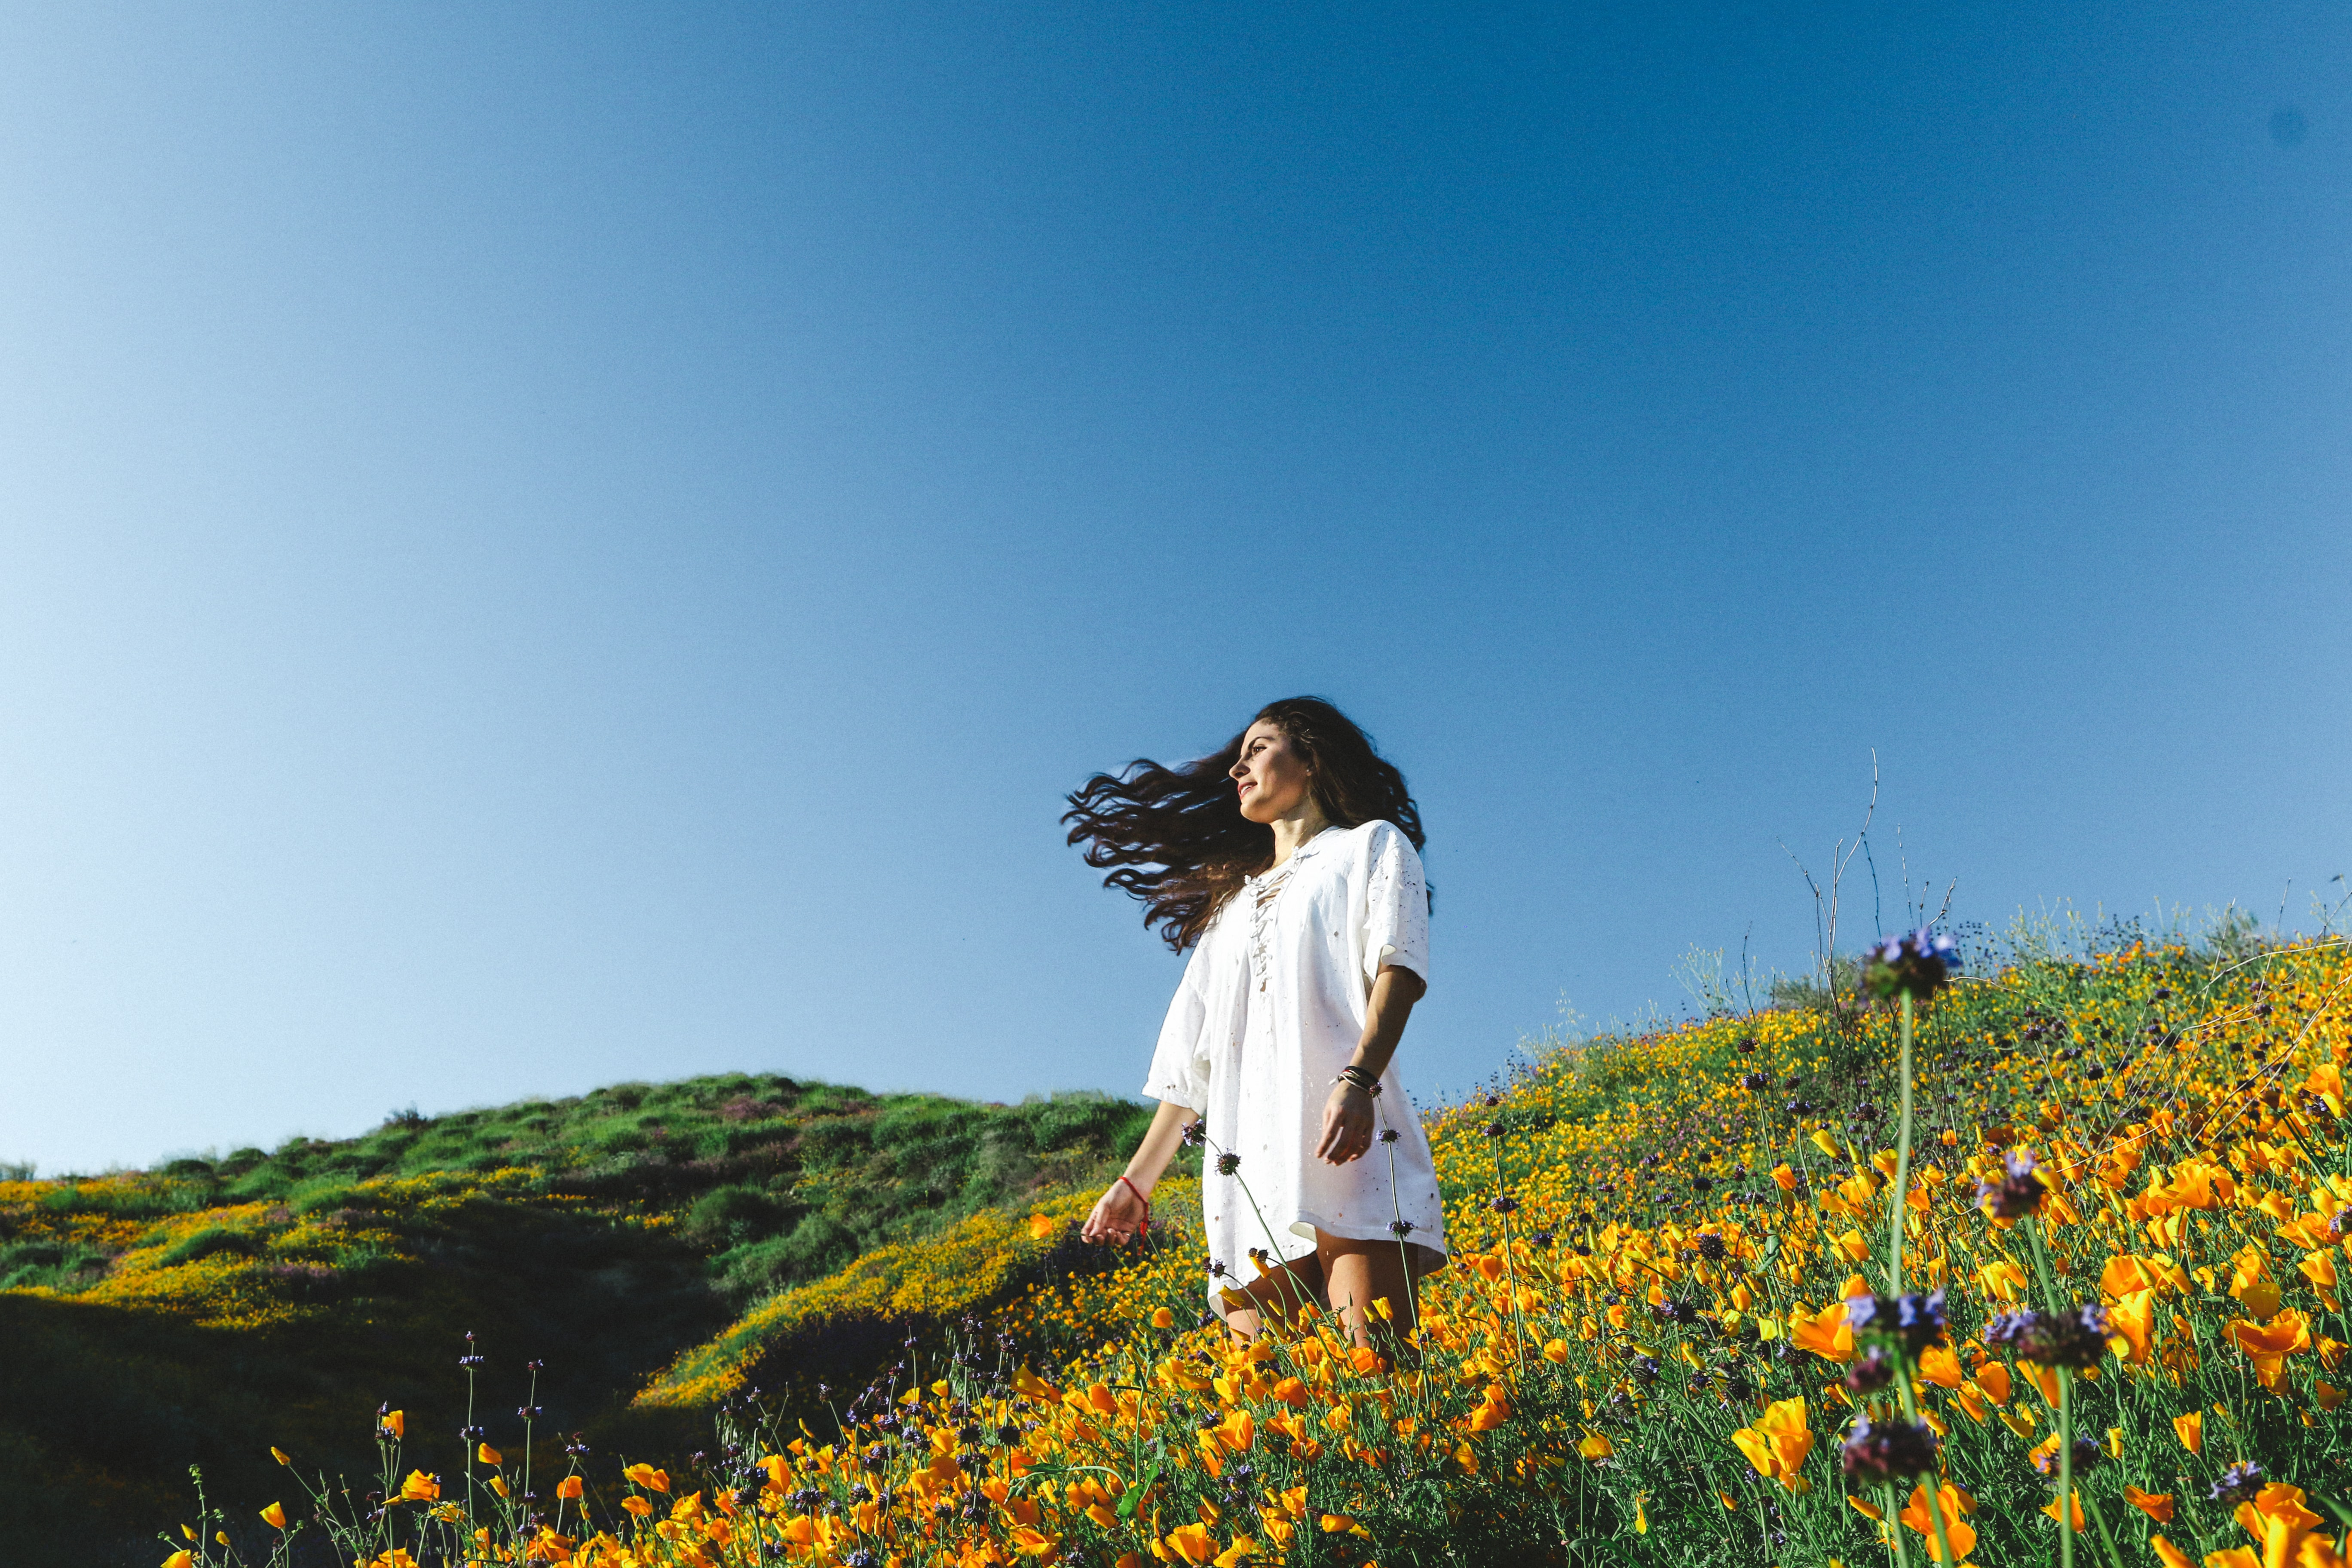 A dark-haired woman in a white dress in a sunny meadow full of orange flowers